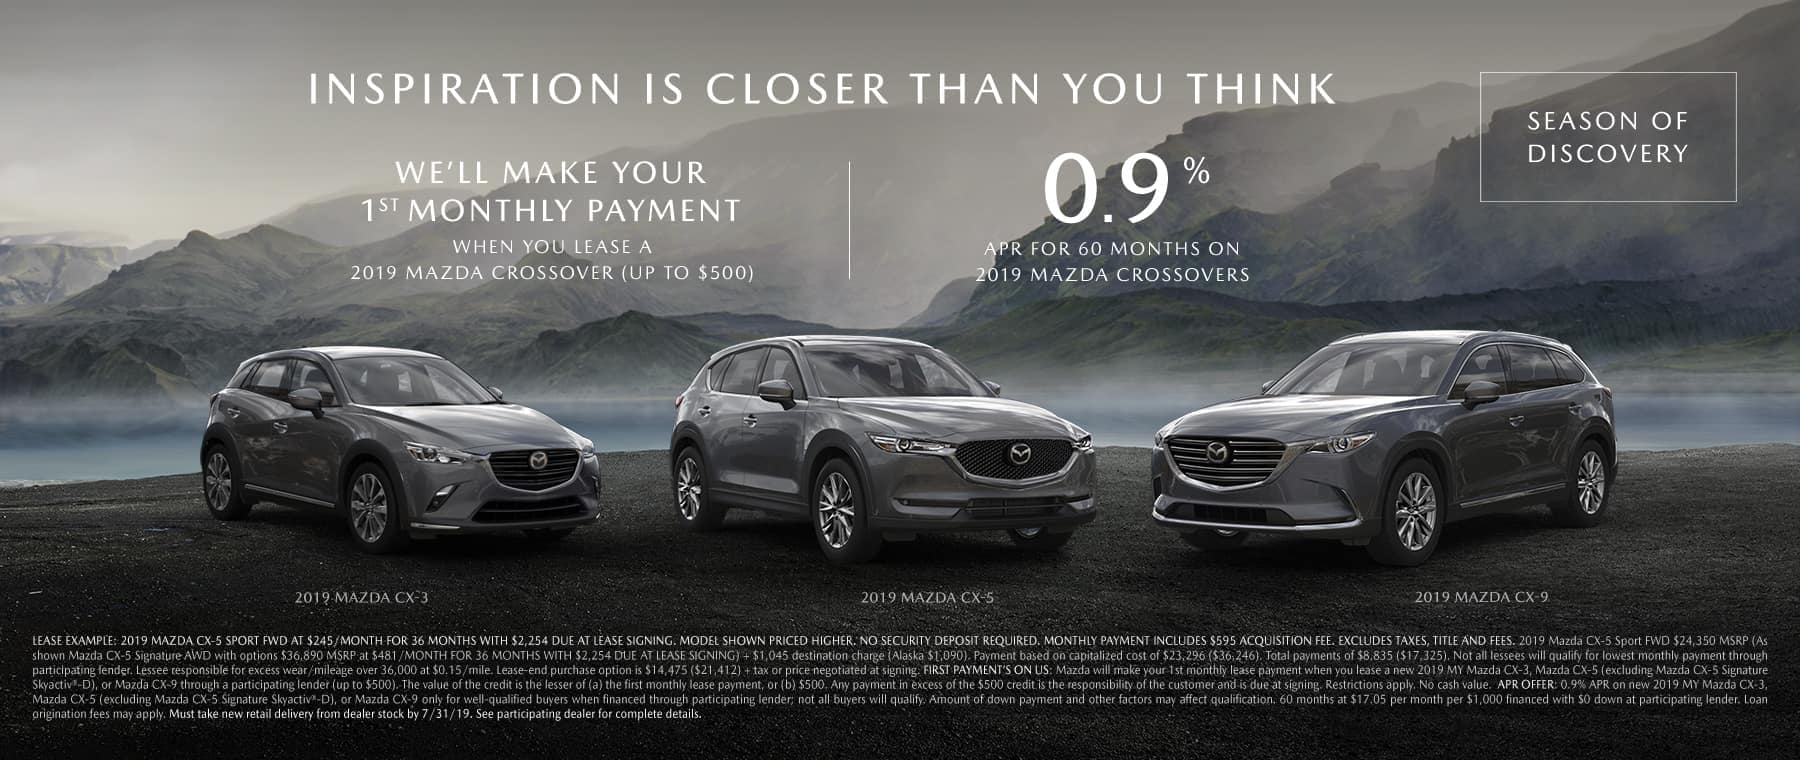 Season of Discovery Sales Event